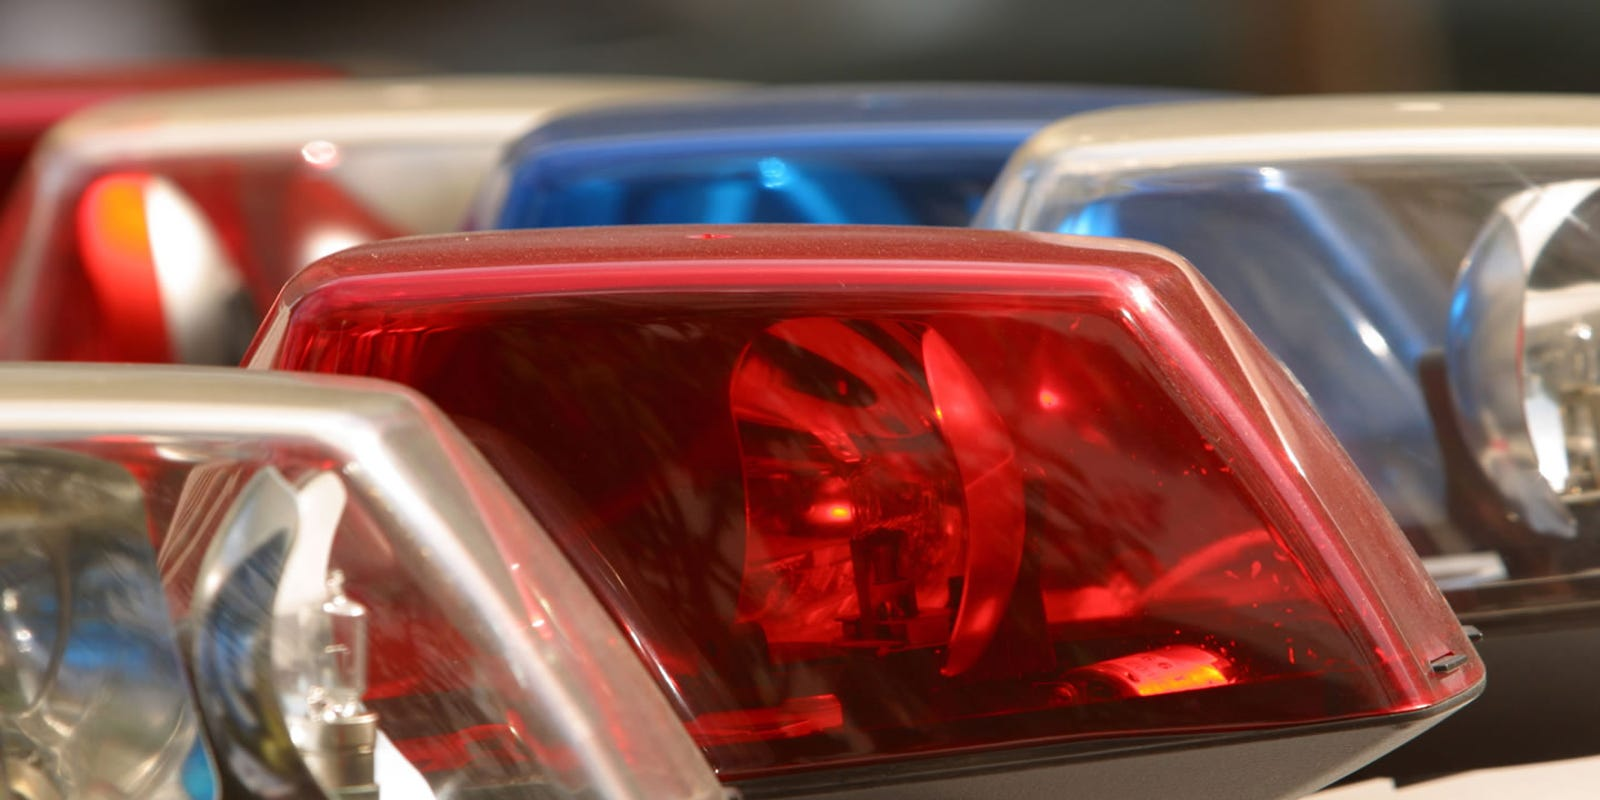 Armed man shot and killed by Fort Madison Police, officials say